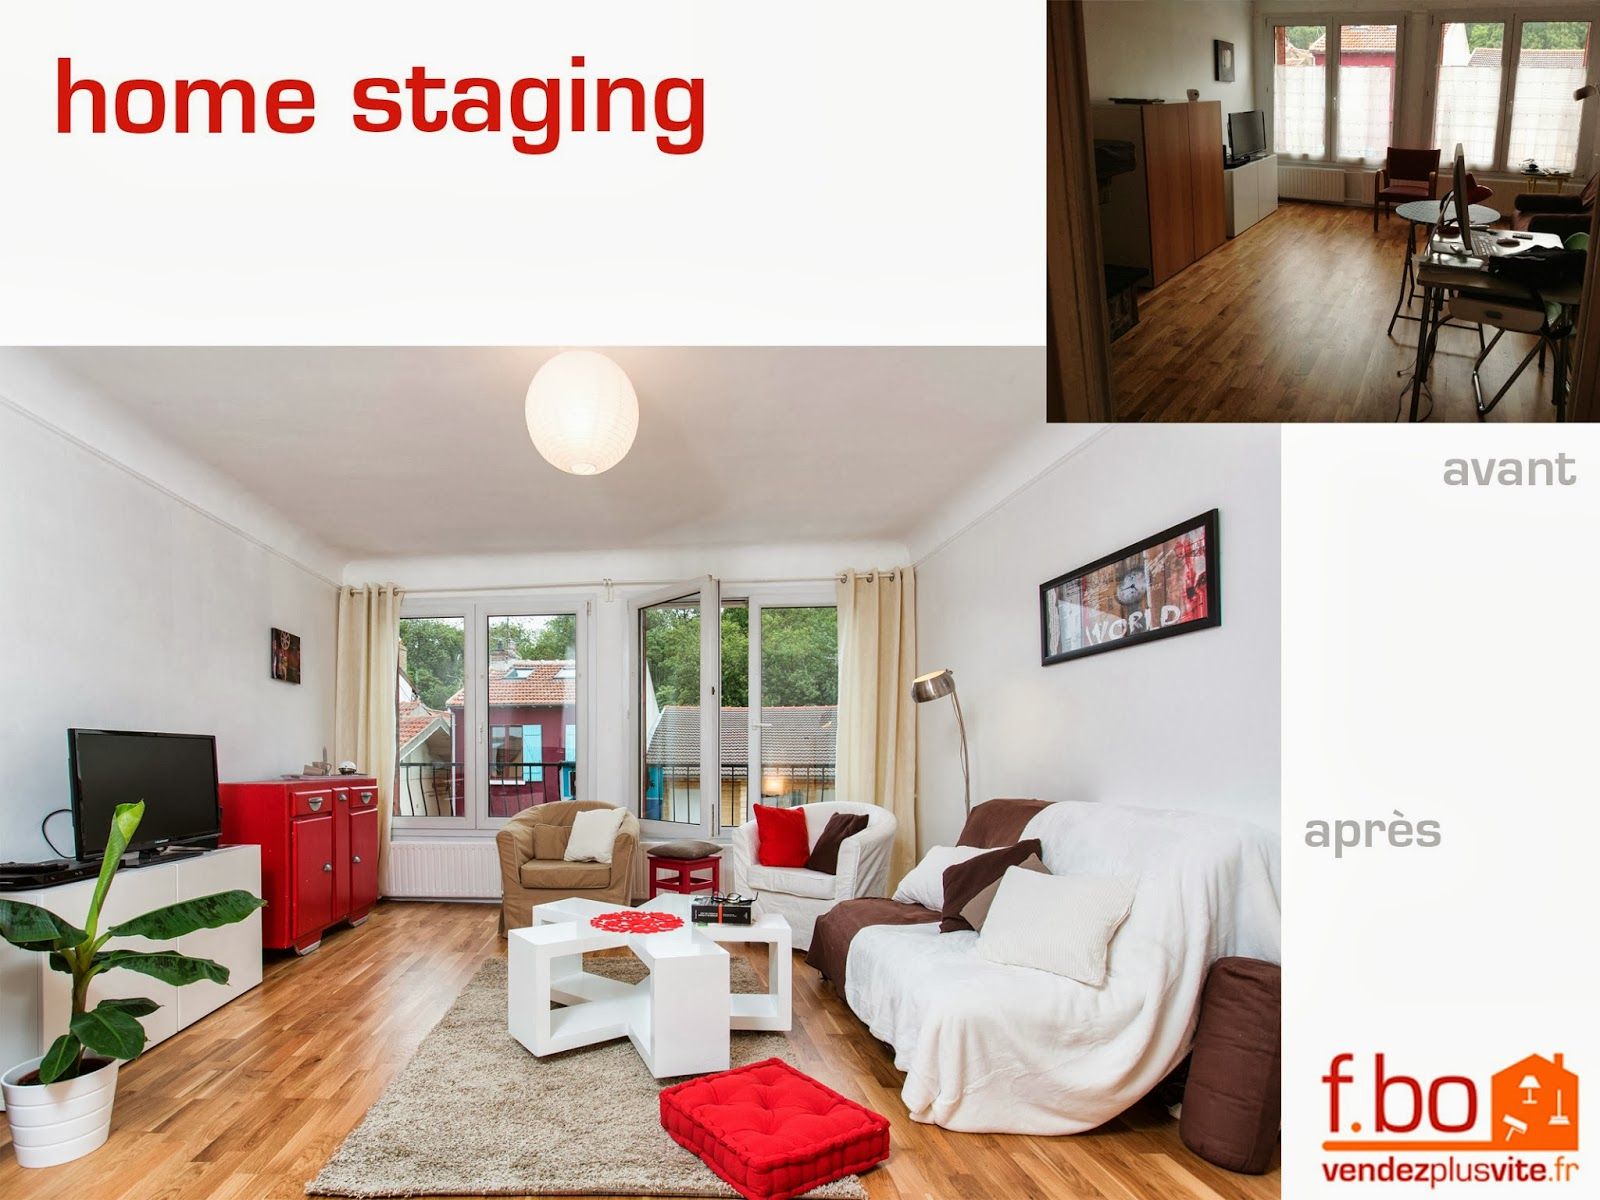 Home Staging Salon Home Staging Salon Home Staging Elle D Coration Home